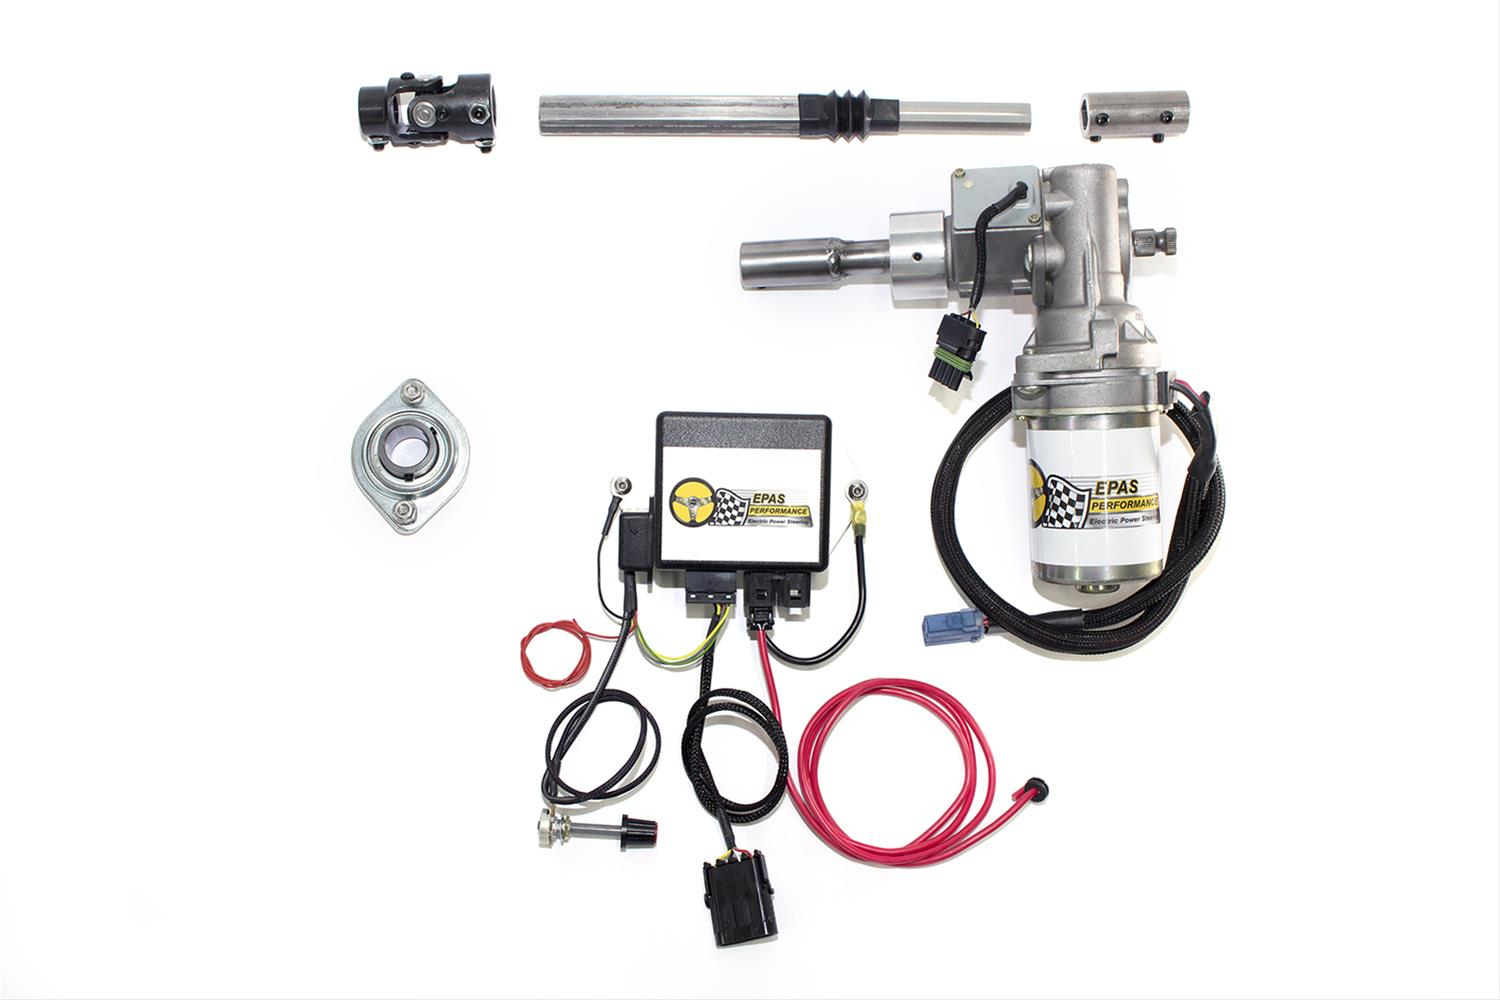 Epas Performance Electric Steering Kits 3001 Free Shipping On Orders Over 99 At Summit Racing